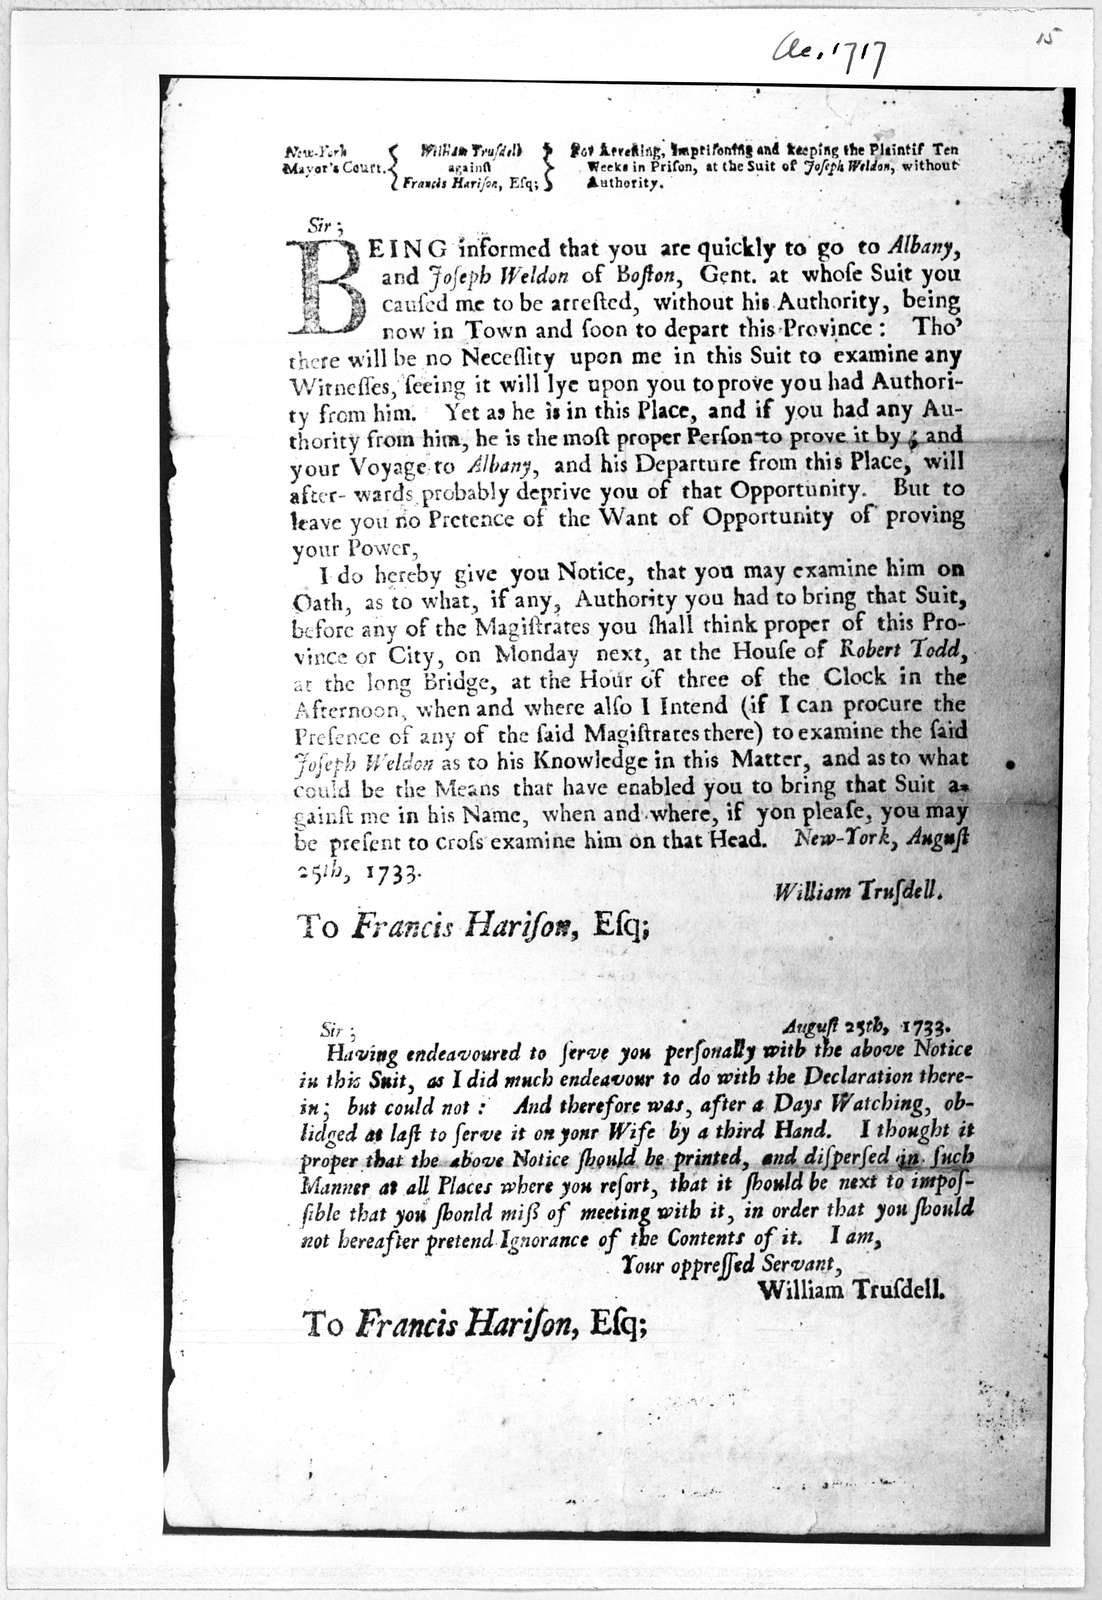 New York Mayor's Court. William Trusdell against Francis Harison, Esq. For arresting, imprisoning and keeping the Plaintif Ten weeks in prison, at the suit of Joseph Weldon, without authority ... [Dated New York, August 25th, 1733].